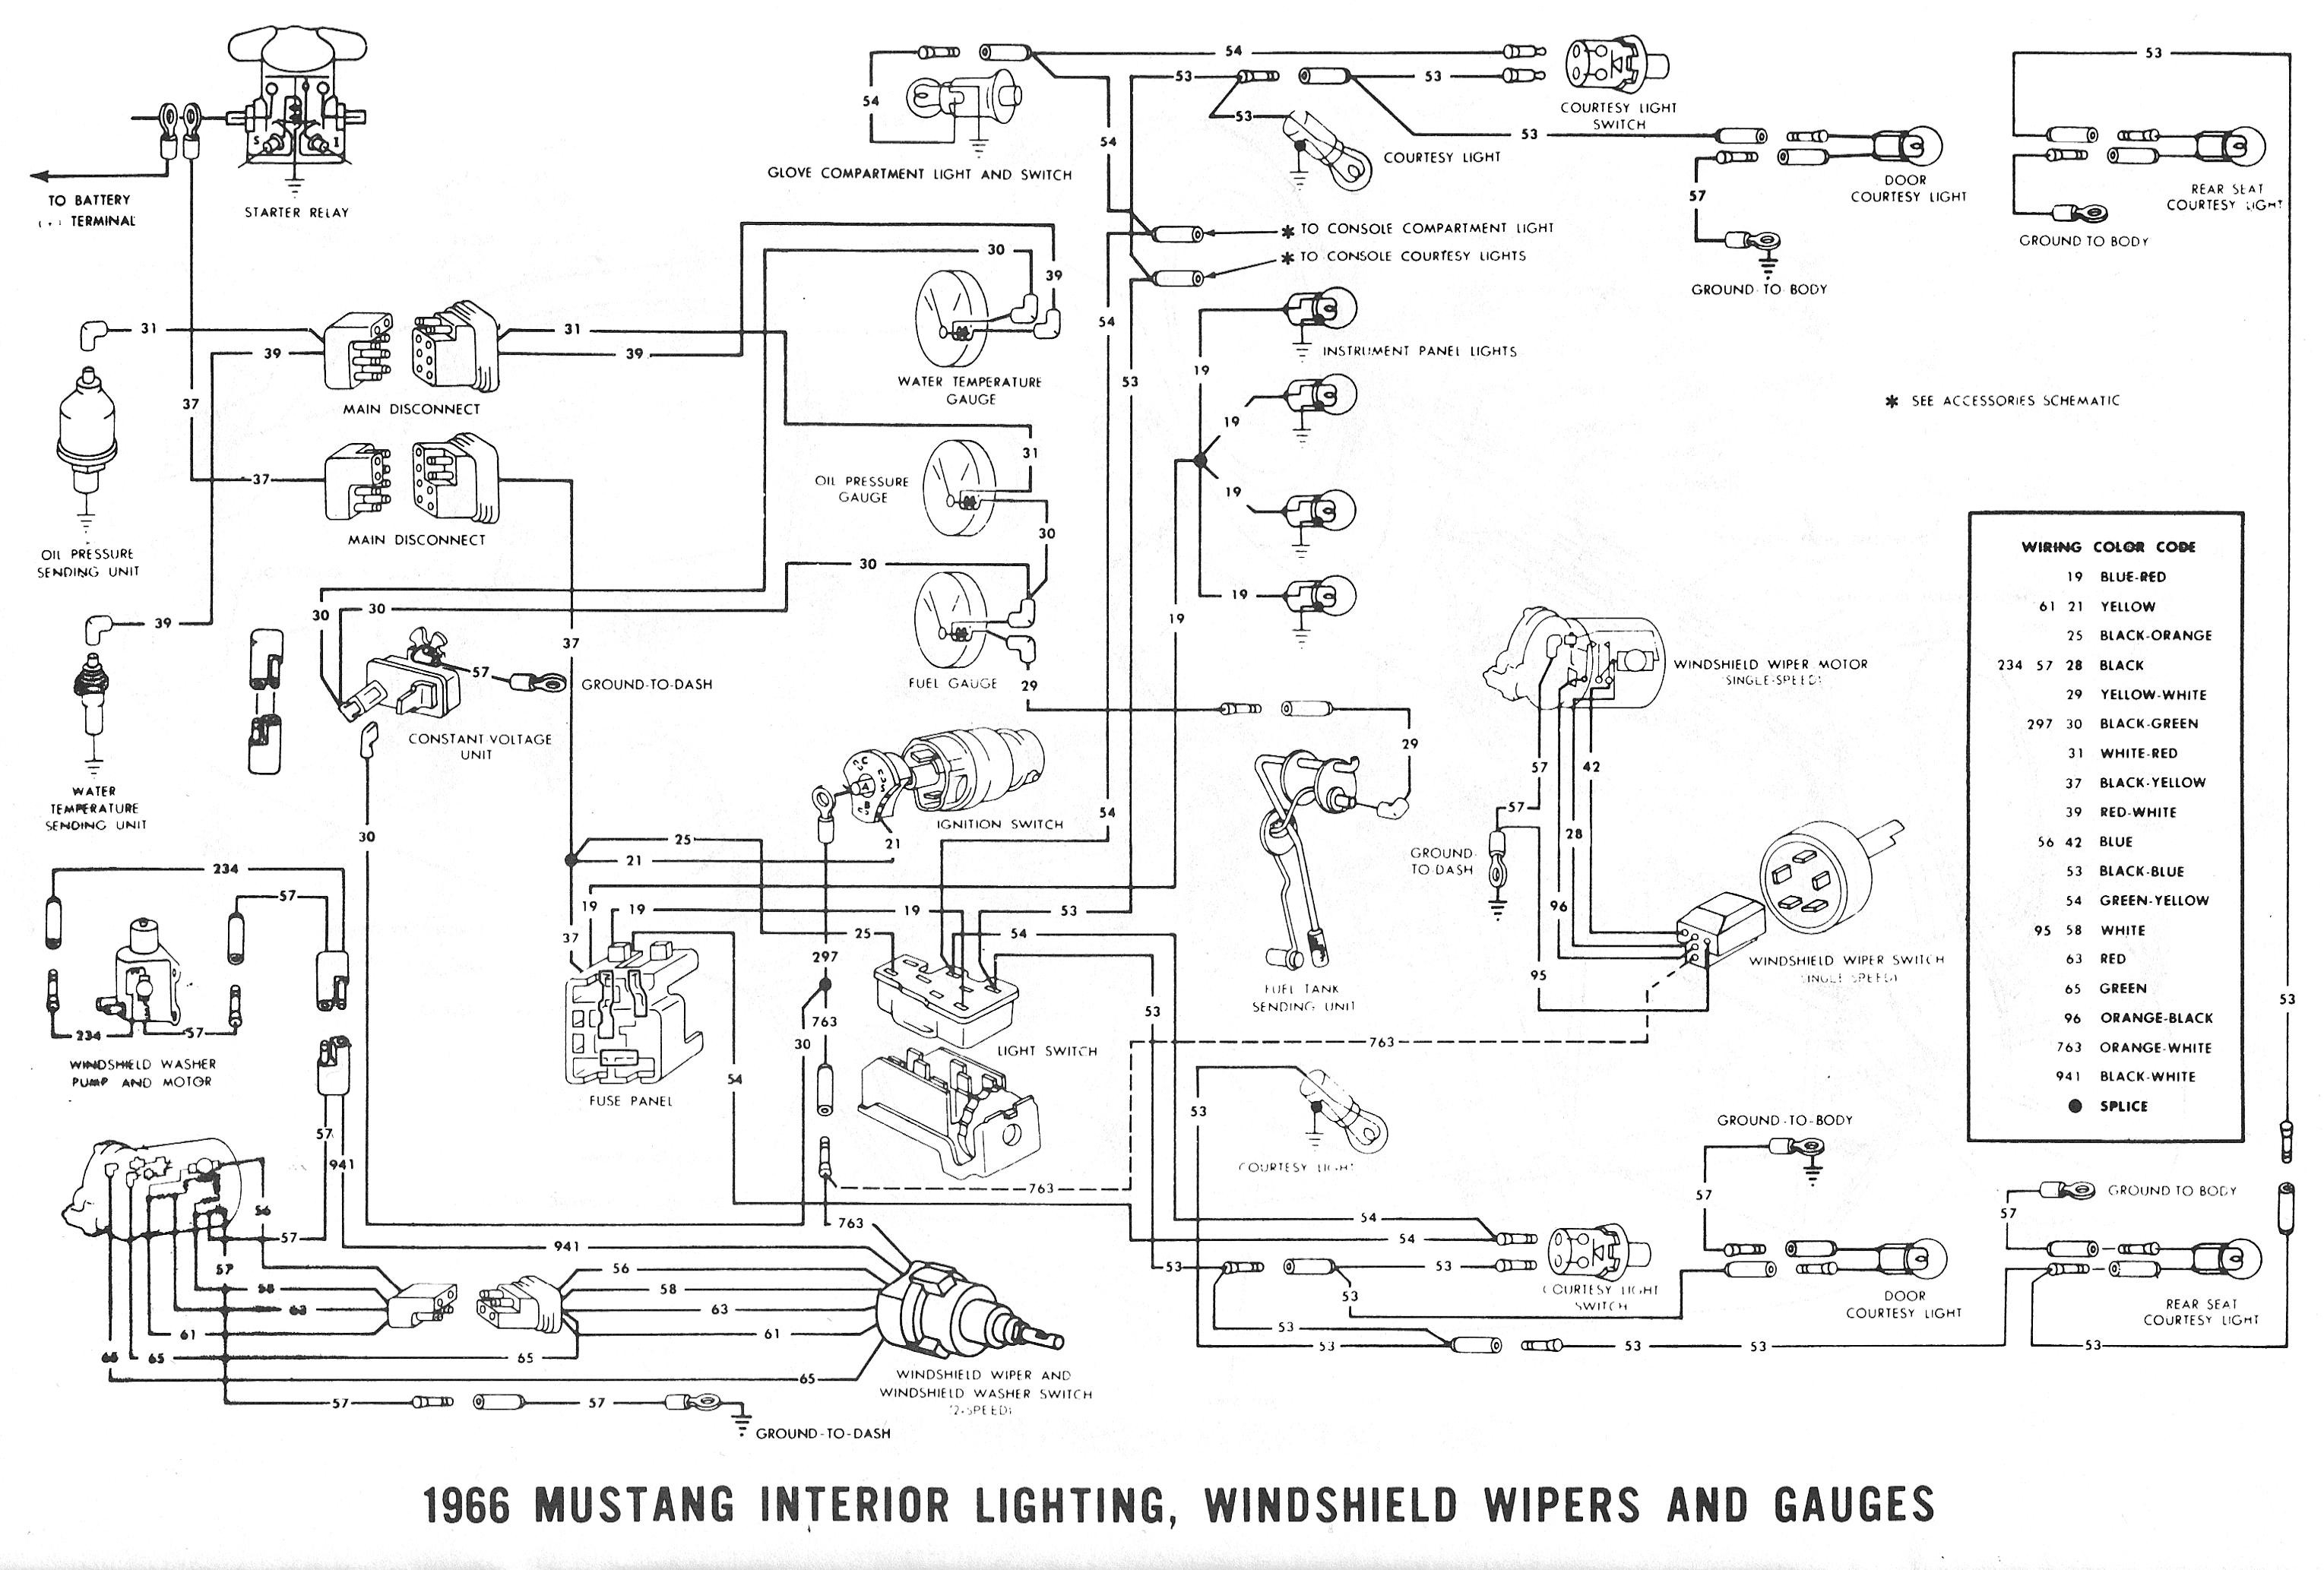 1965 mustang ignition wiring diagram Download-1966 Mustang Ignition Switch Wiring Diagram Awesome Wiring Diagram Tech Rp3 1965 ford Mustang Accessories Fine 1-e